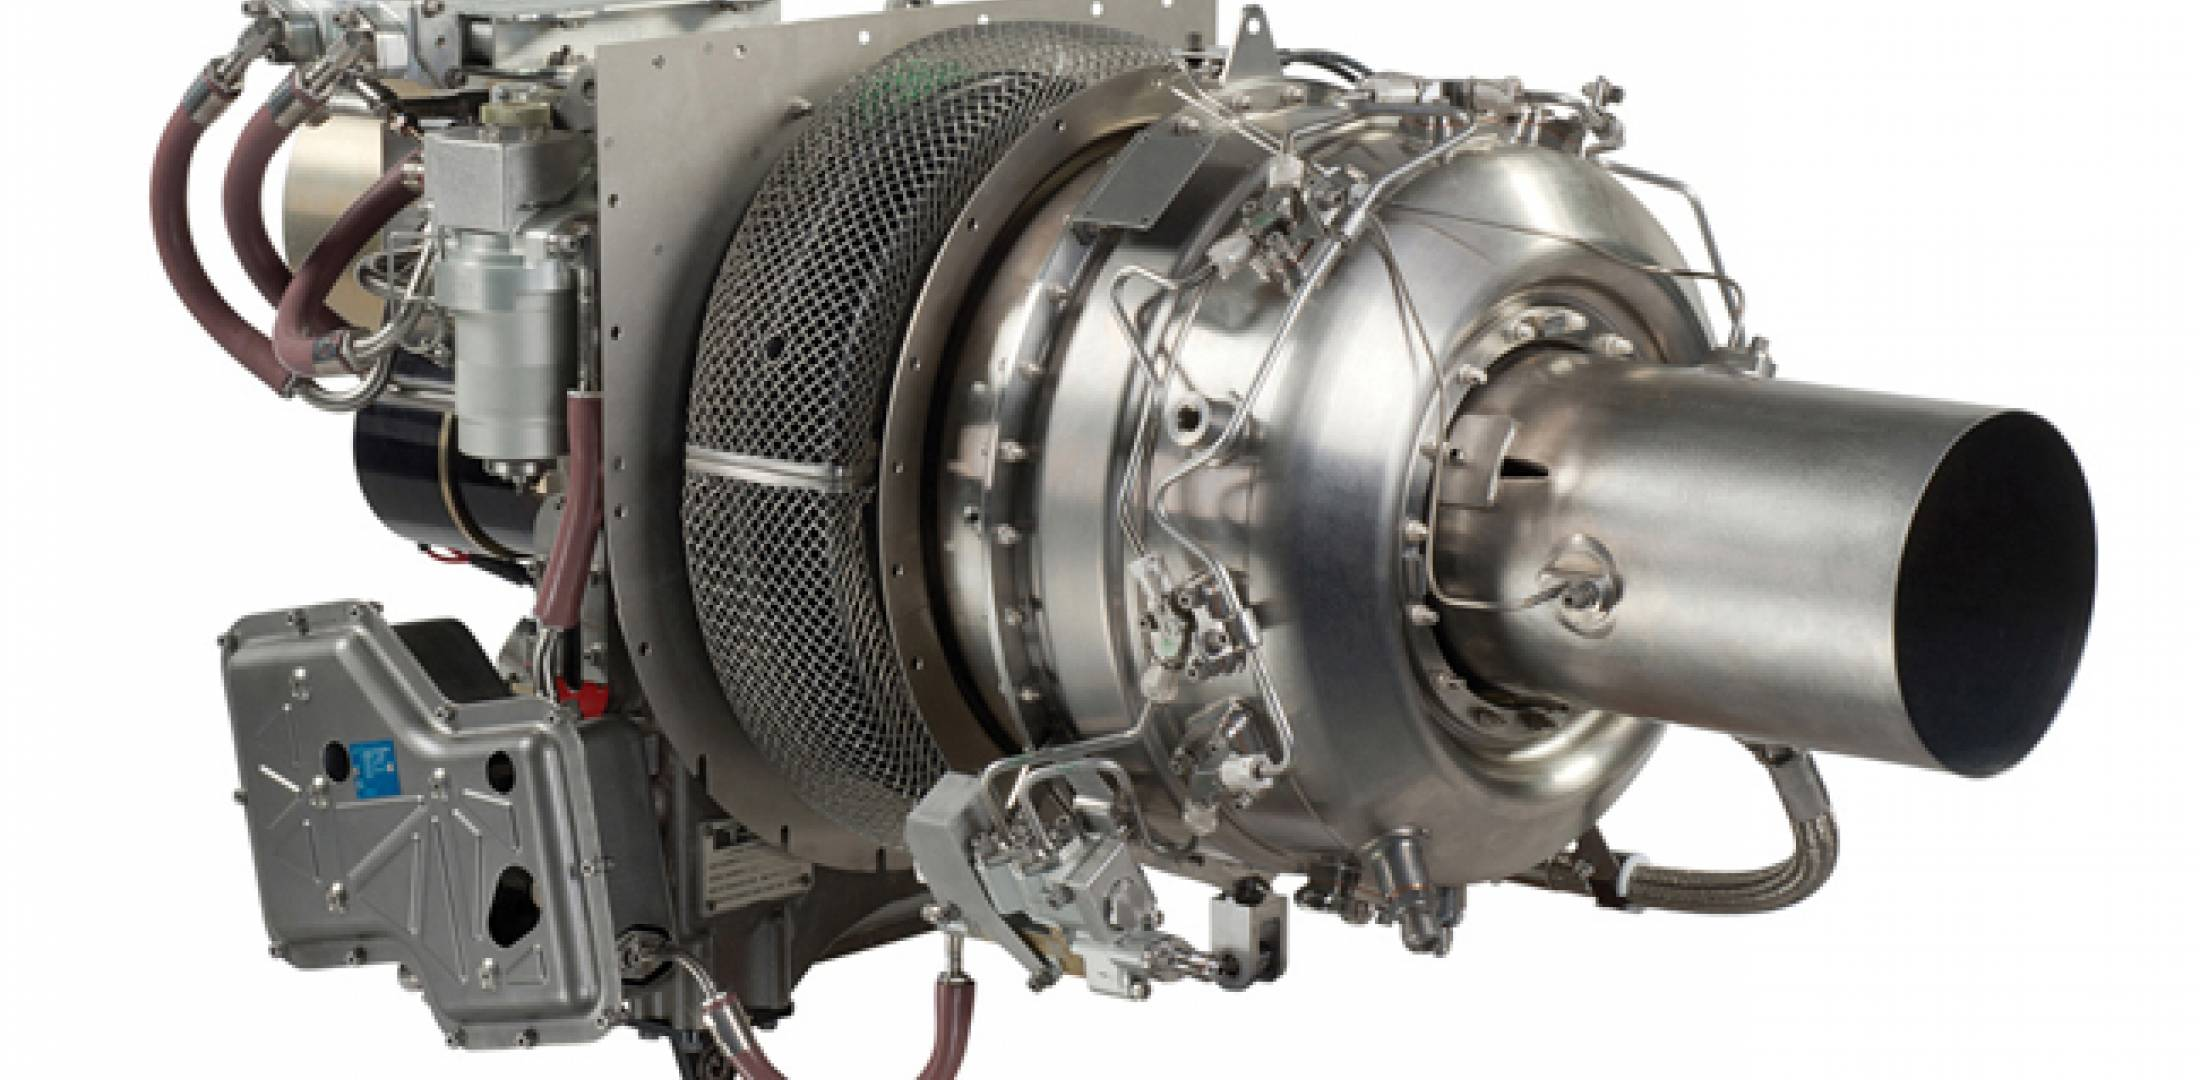 Microturbo's e-APU has now been approved by the U.S. FAA.